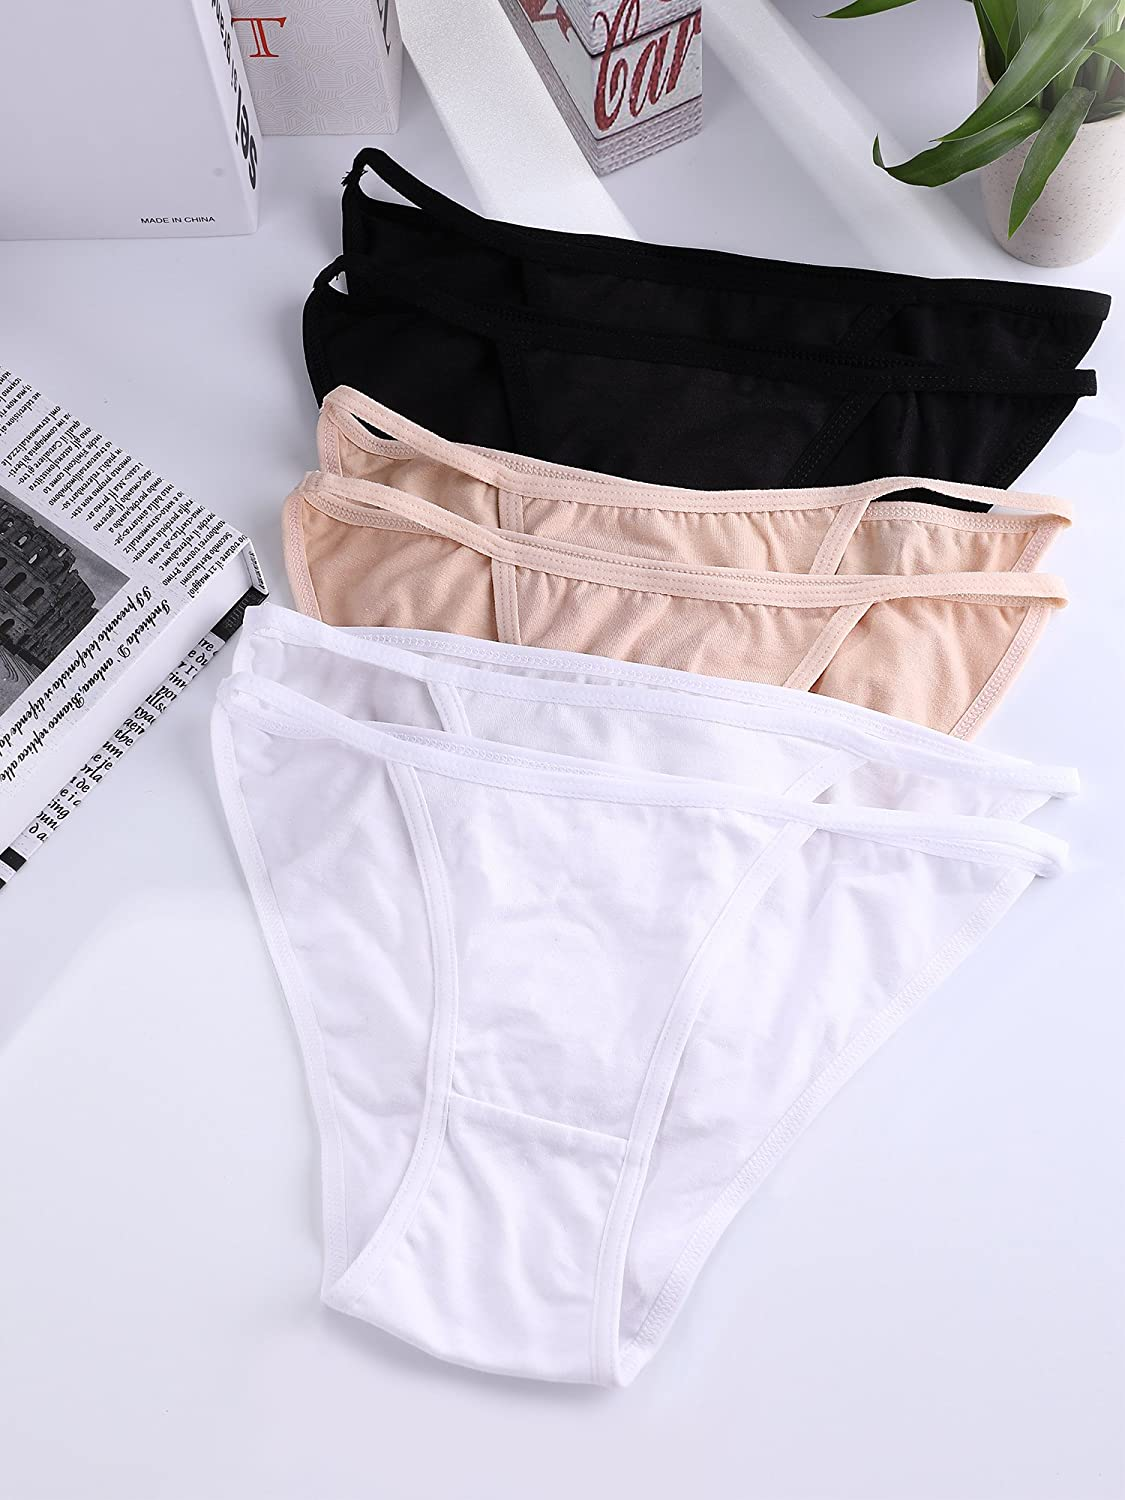 59a1f32f5fe3 BOAO 6 Pieces Women Bikini Underwear Cotton Bikini Panties Low Rise String  Lingerie, S - larger image